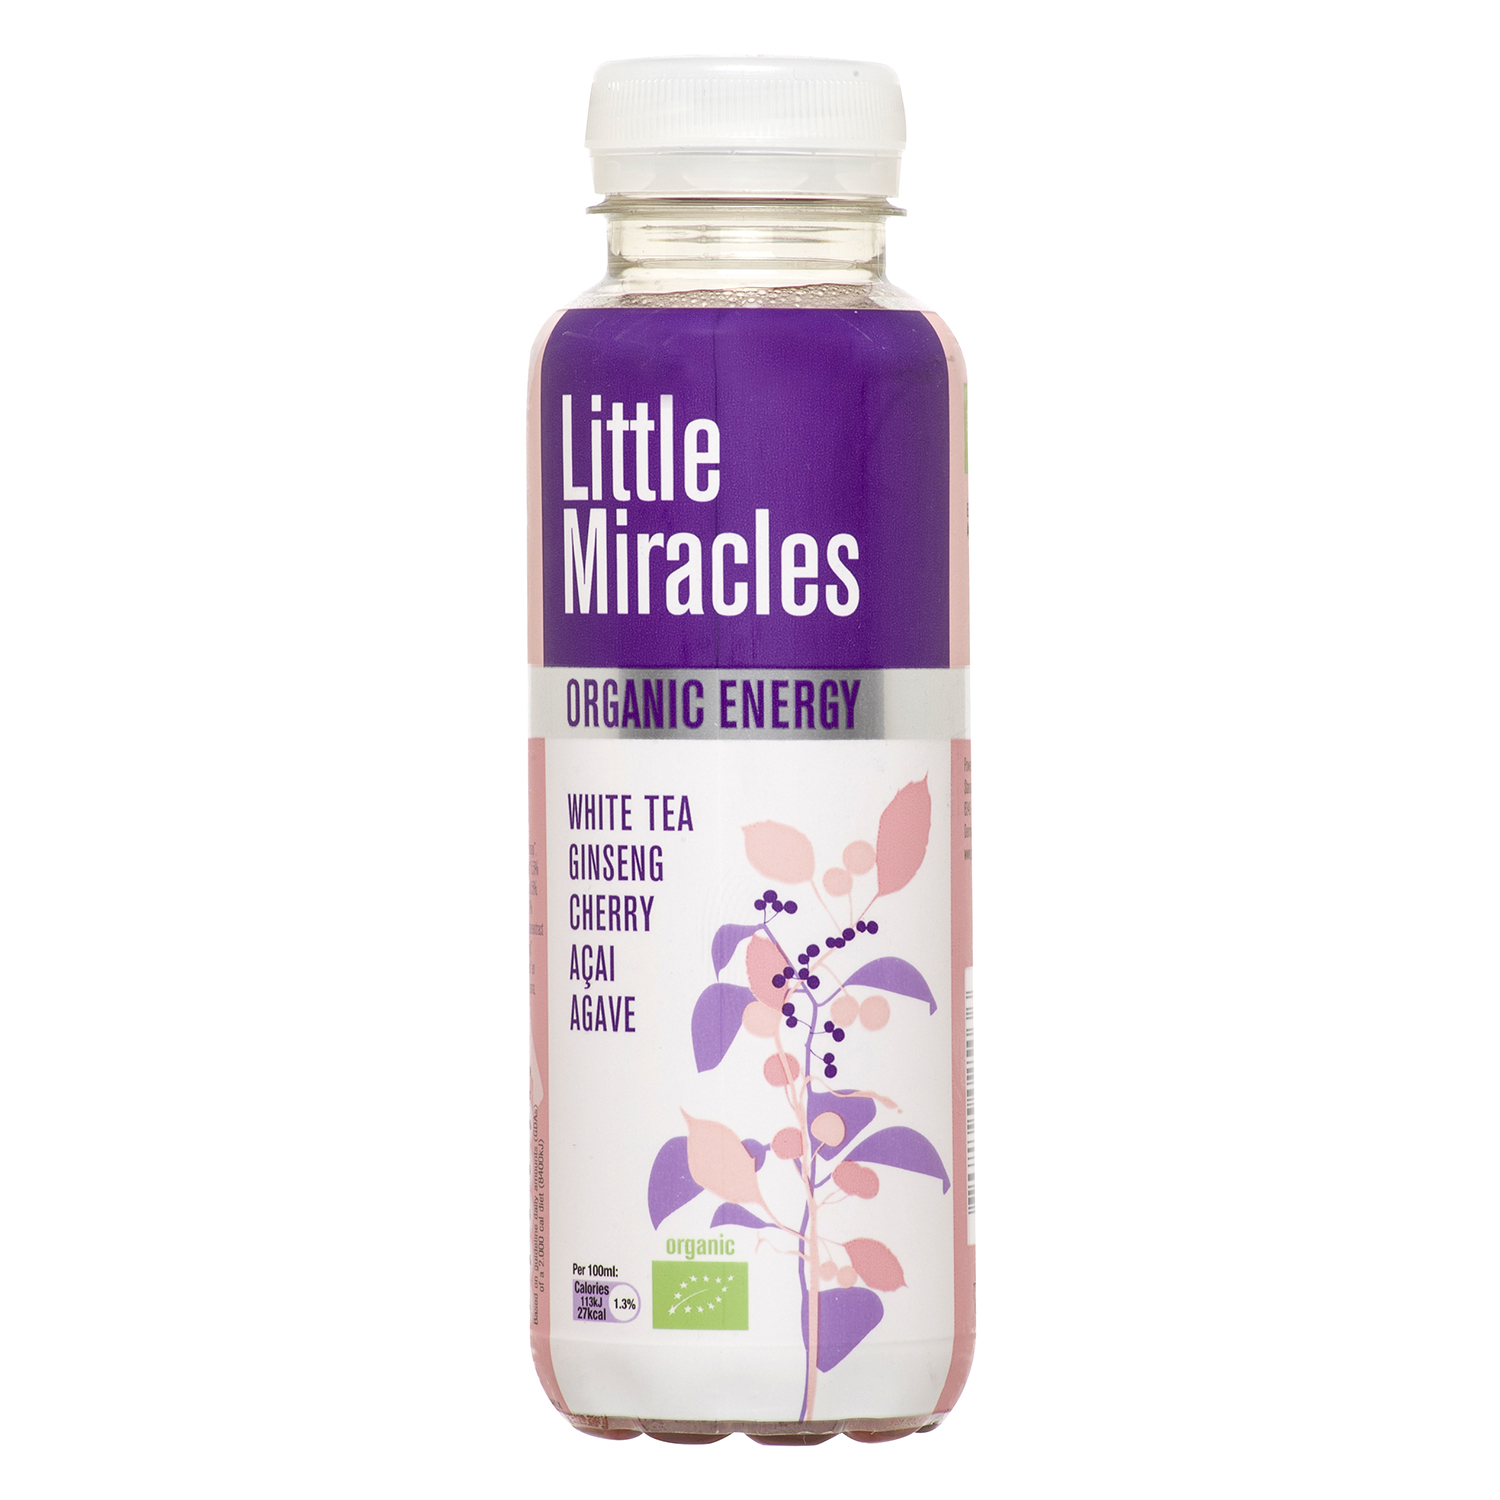 Refresco de té blanco ecológico Little Miracles sabor cereza botella 33 cl.